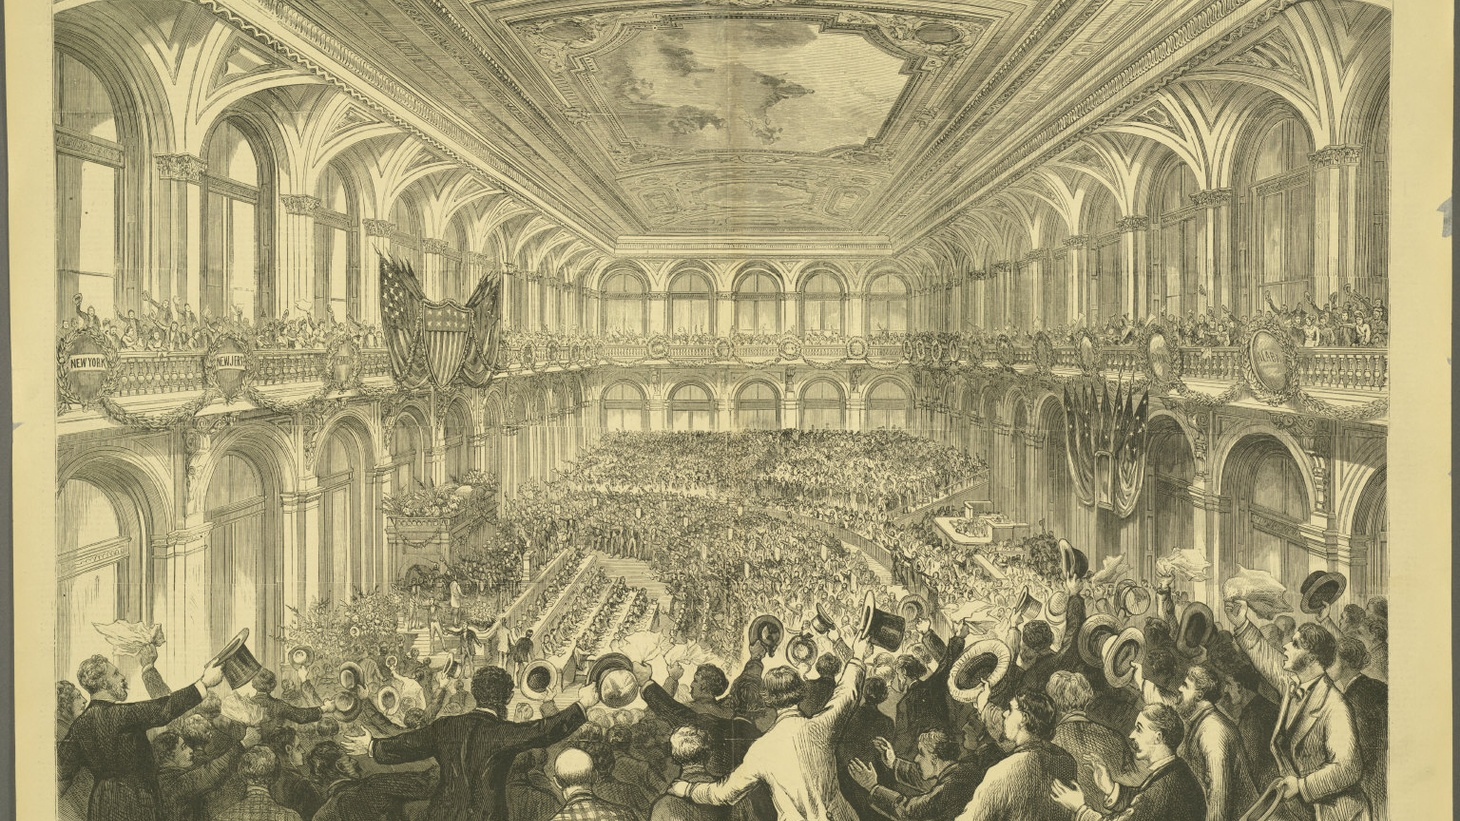 The interior of the Merchants Exchange Building of St. Louis, Missouri, during the announcement of Samuel J. Tilden as the Democratic presidential nominee in the 1876 election. After a highly controversial race, the victory ultimately went to Republican Rutherford B. Hayes.